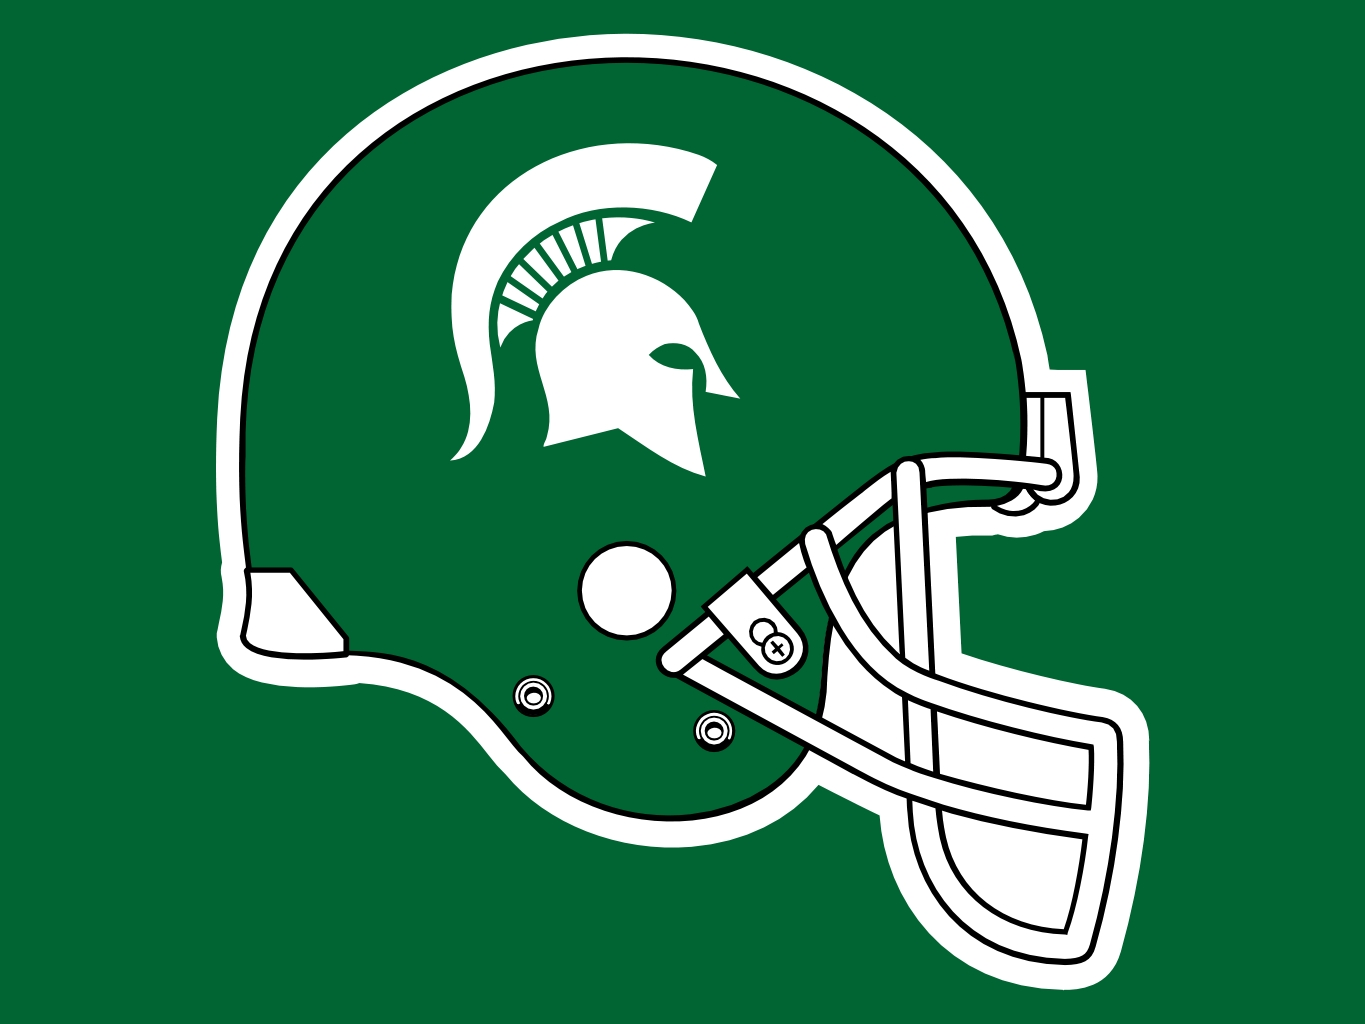 Michigan State Spartans Football Wallpaper - WallpaperSafari